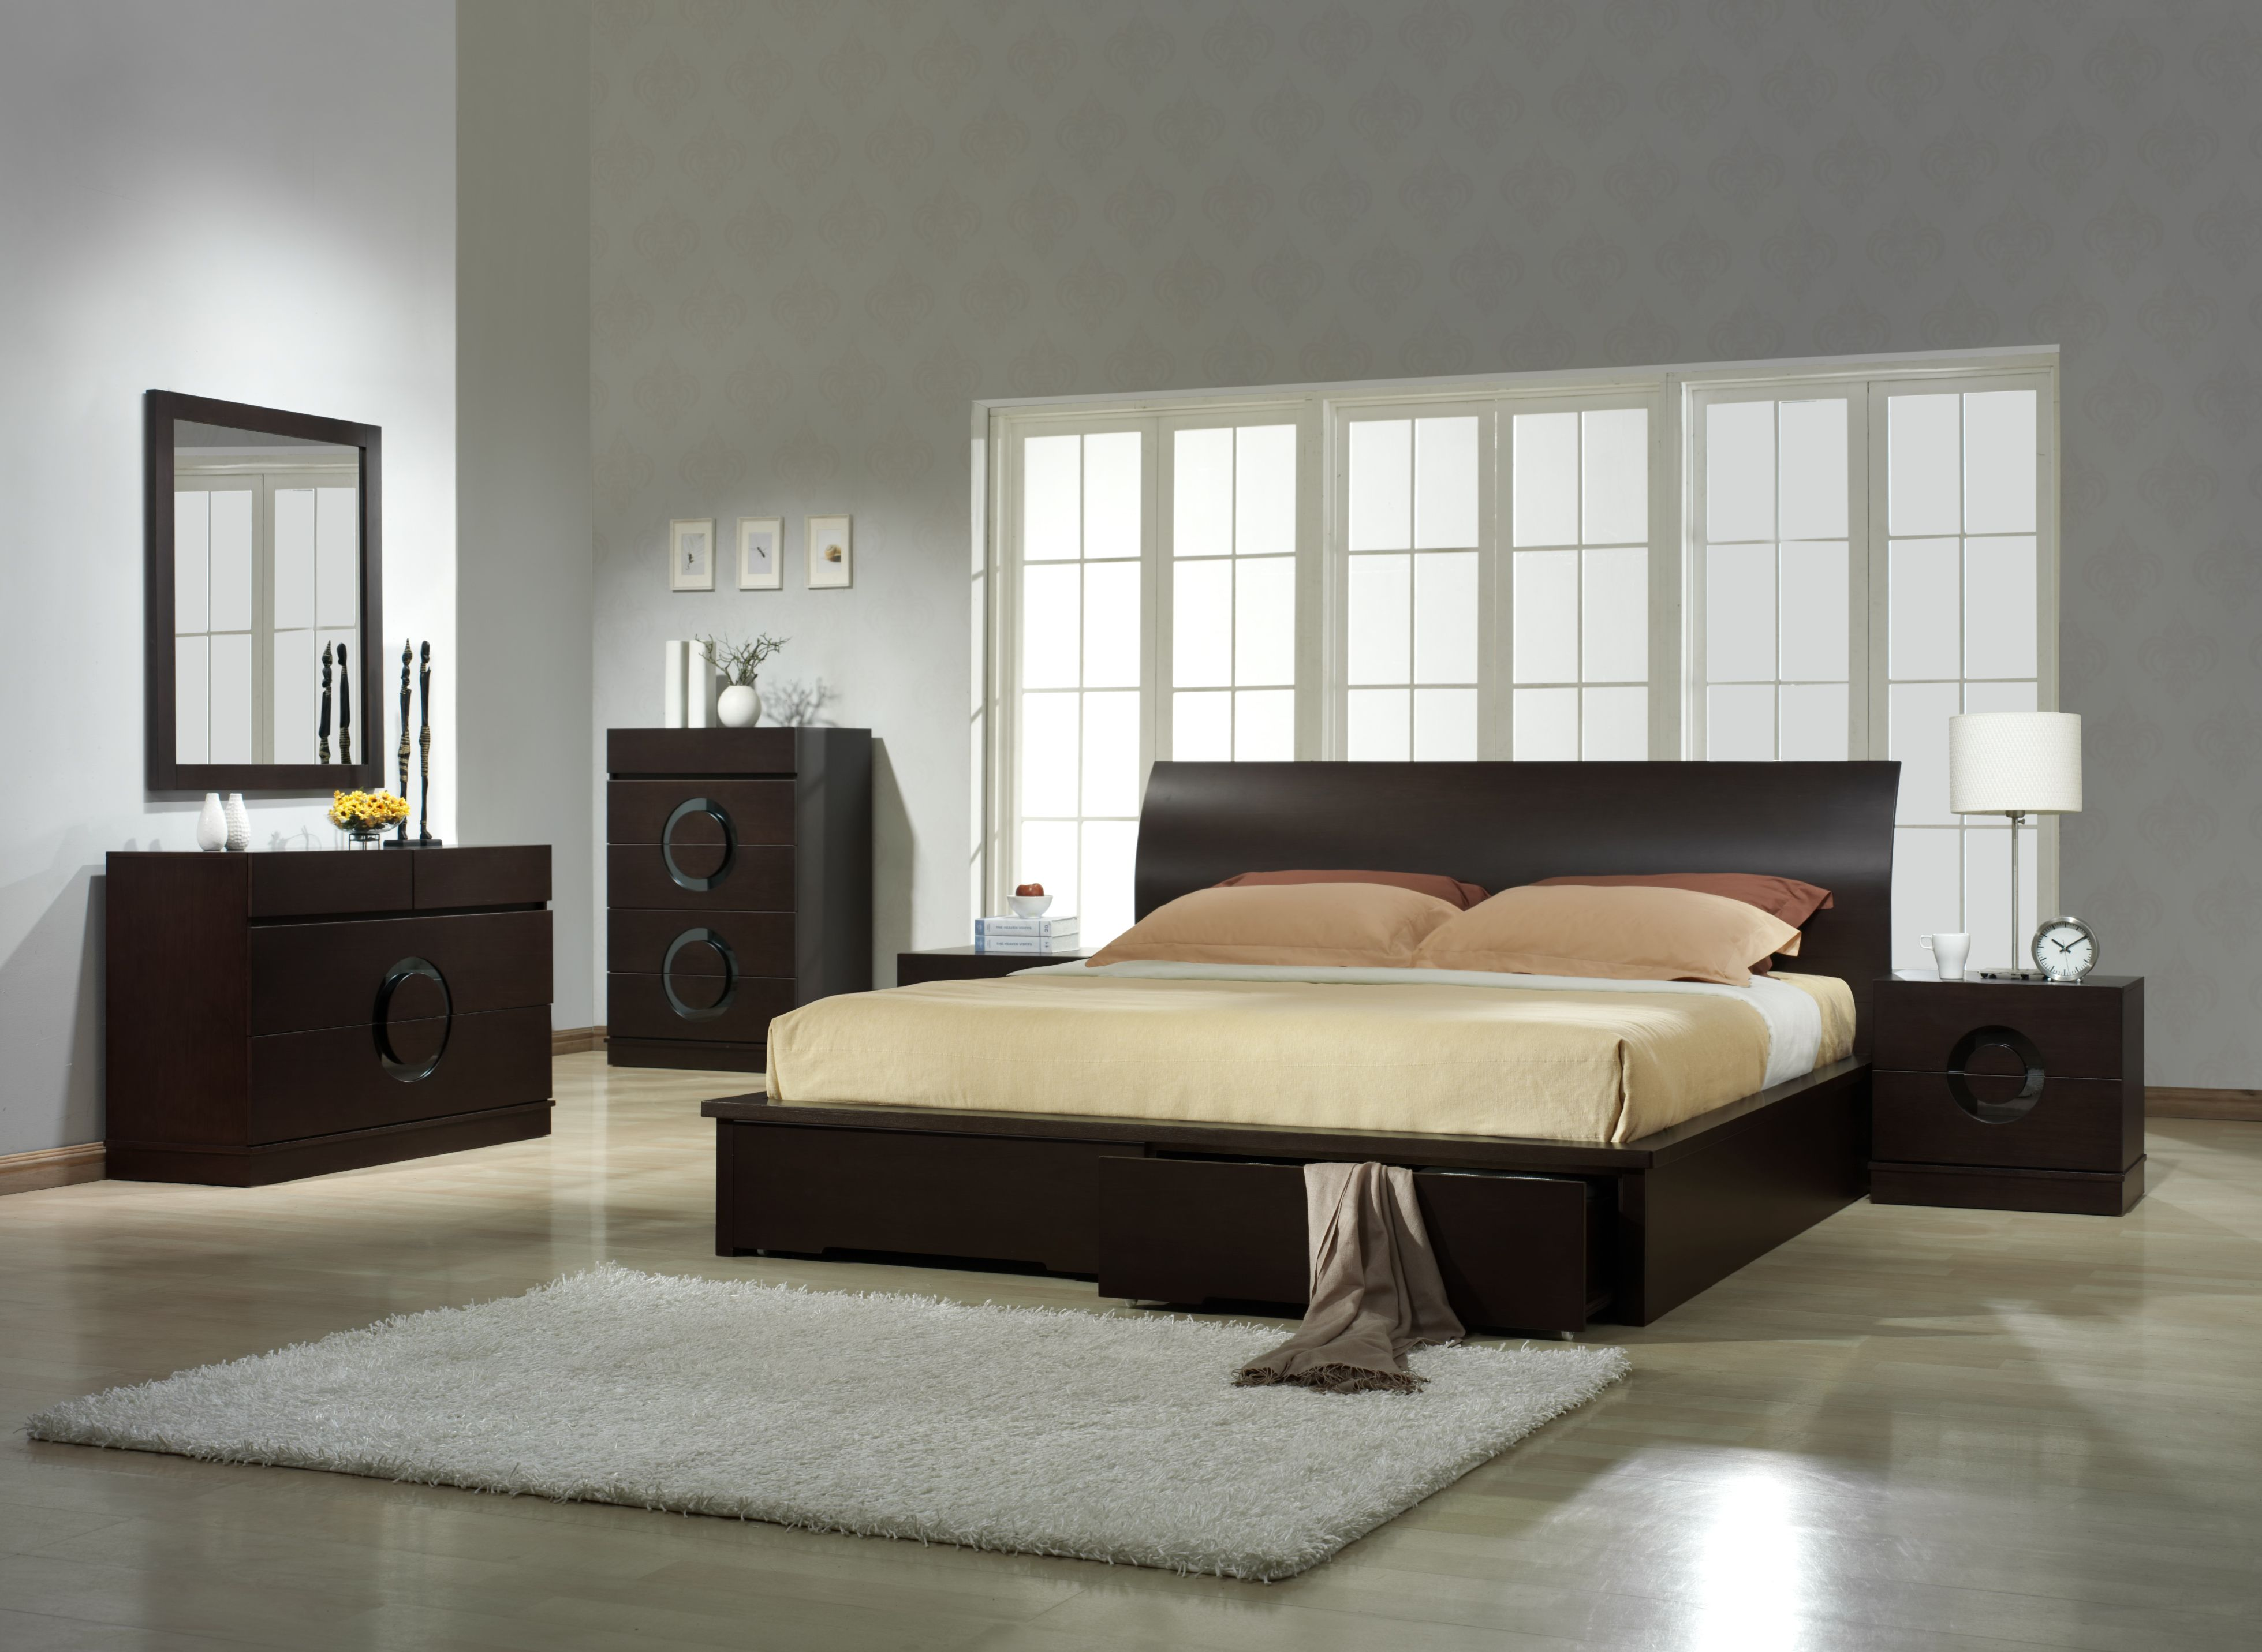 Best Pictures Of Contemporary Bedroom Furniture Sets Cheap Set Feature  Elegant Dark Brown Finish Bed Frame